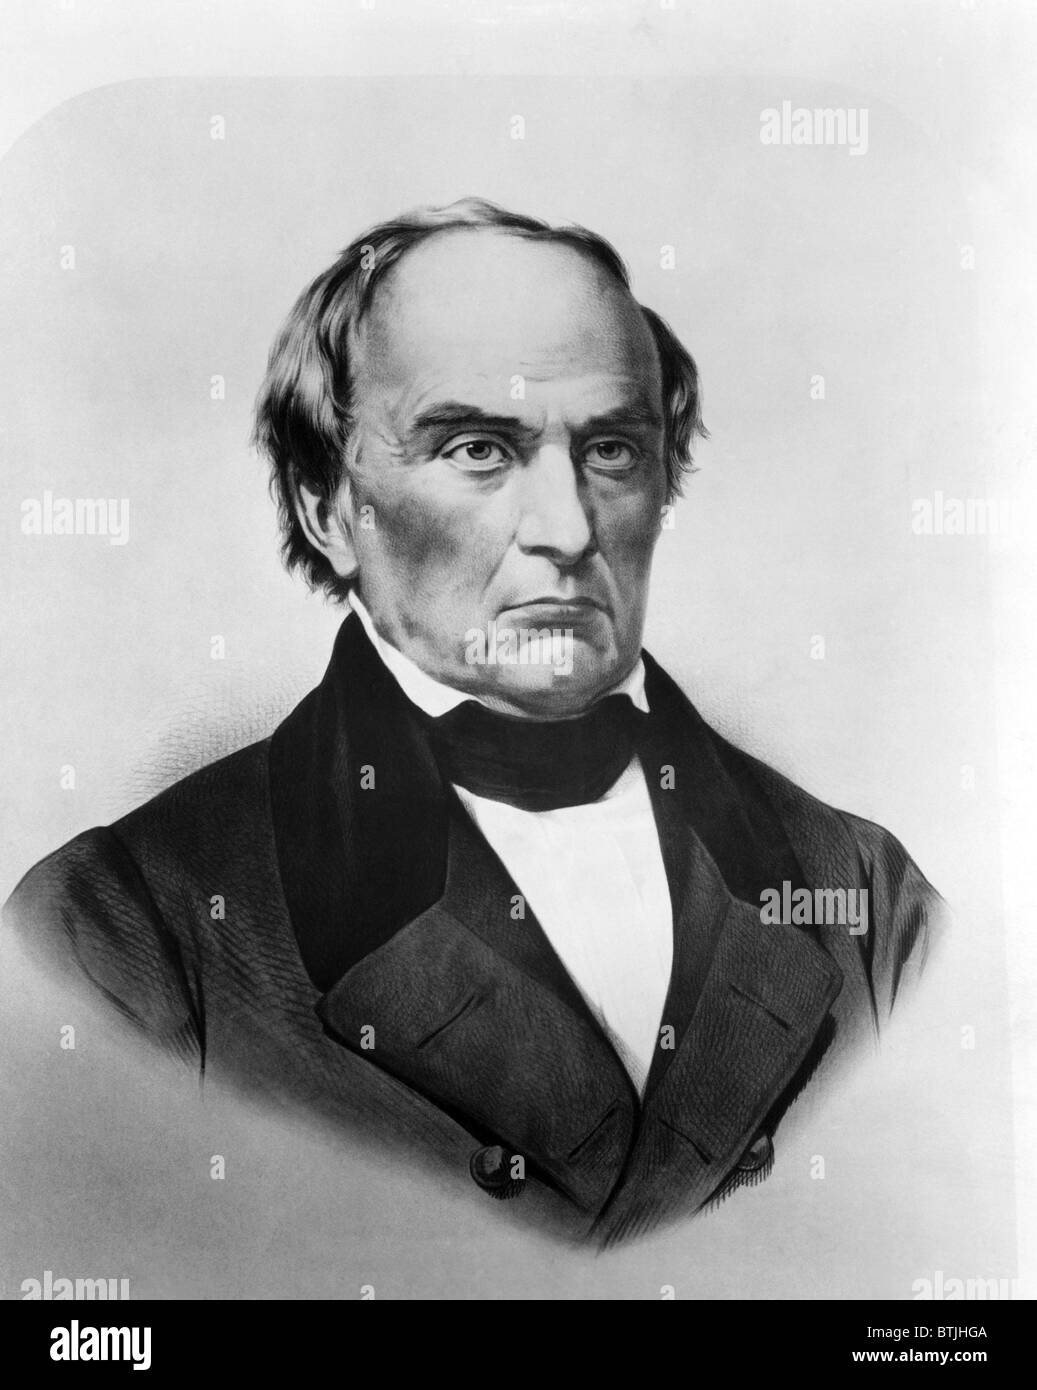 Daniel Webster, (1782-1852), U.S. Secretary of State and Whig leader, c. 1840's. - Stock Image